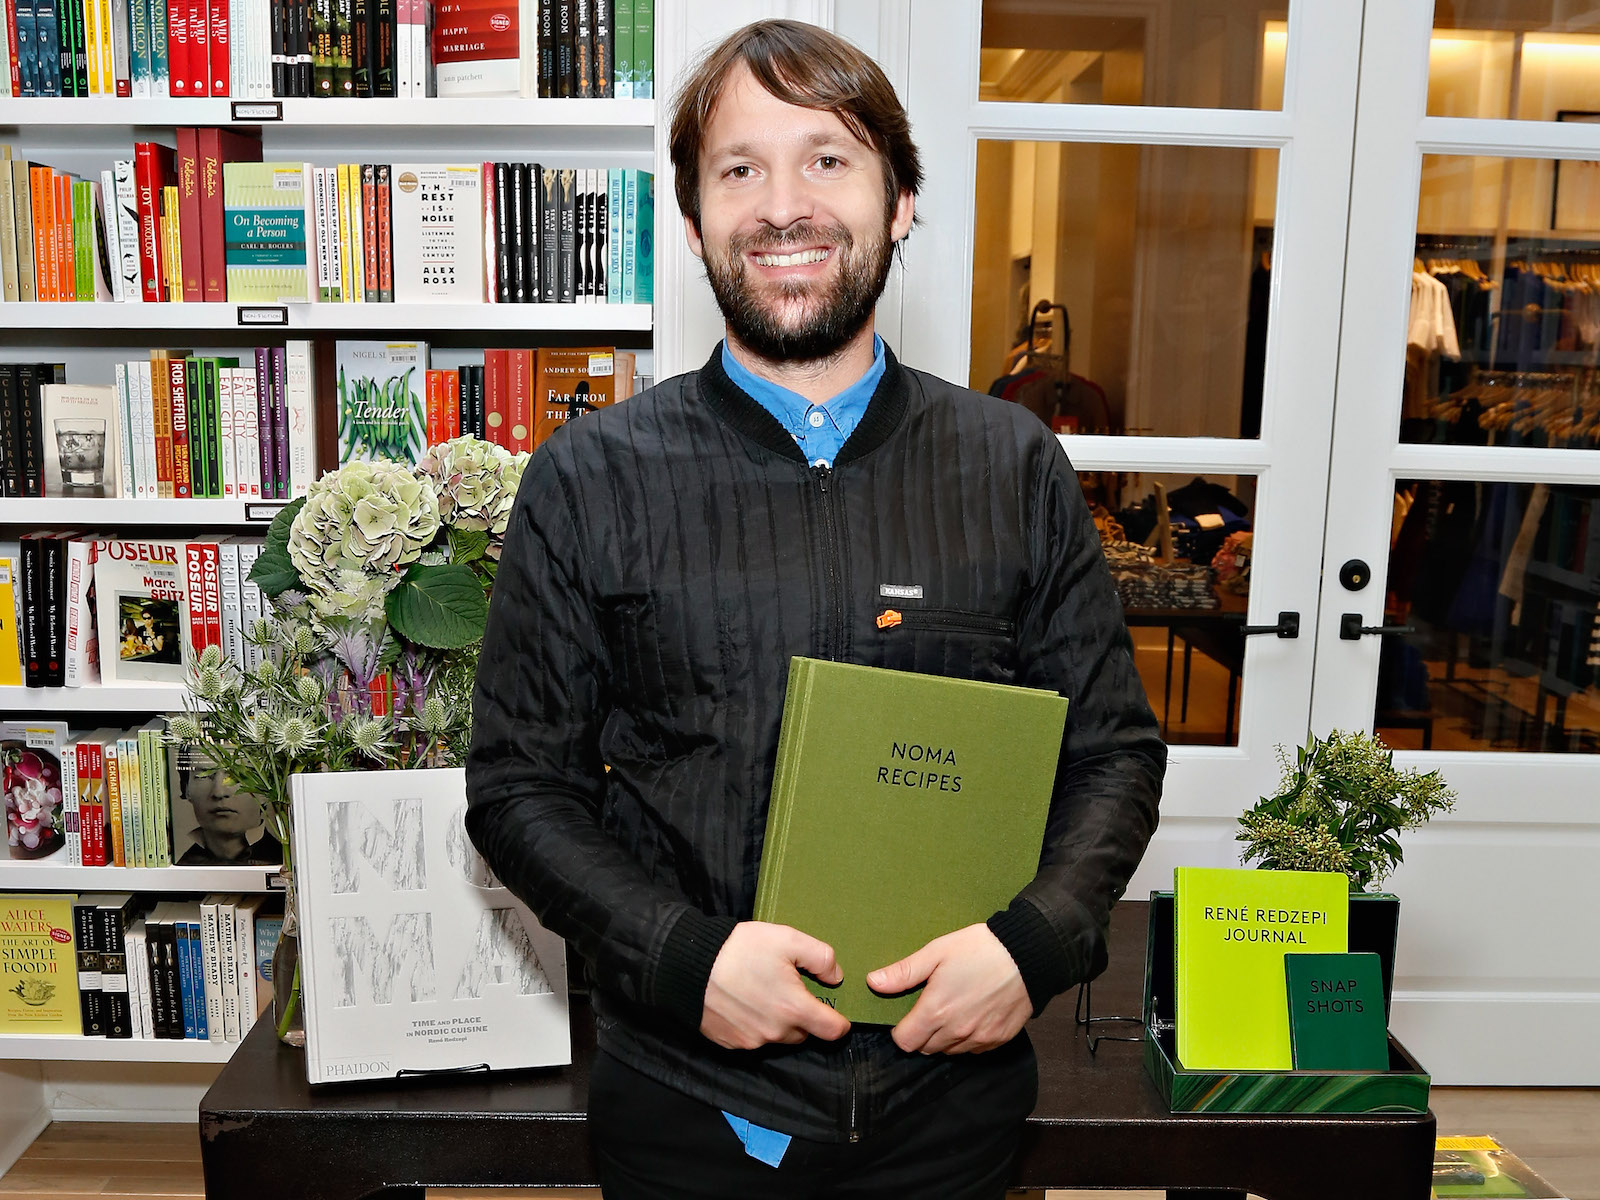 rene-redzepi-dietary-video-FT-BLOG0119.jpg